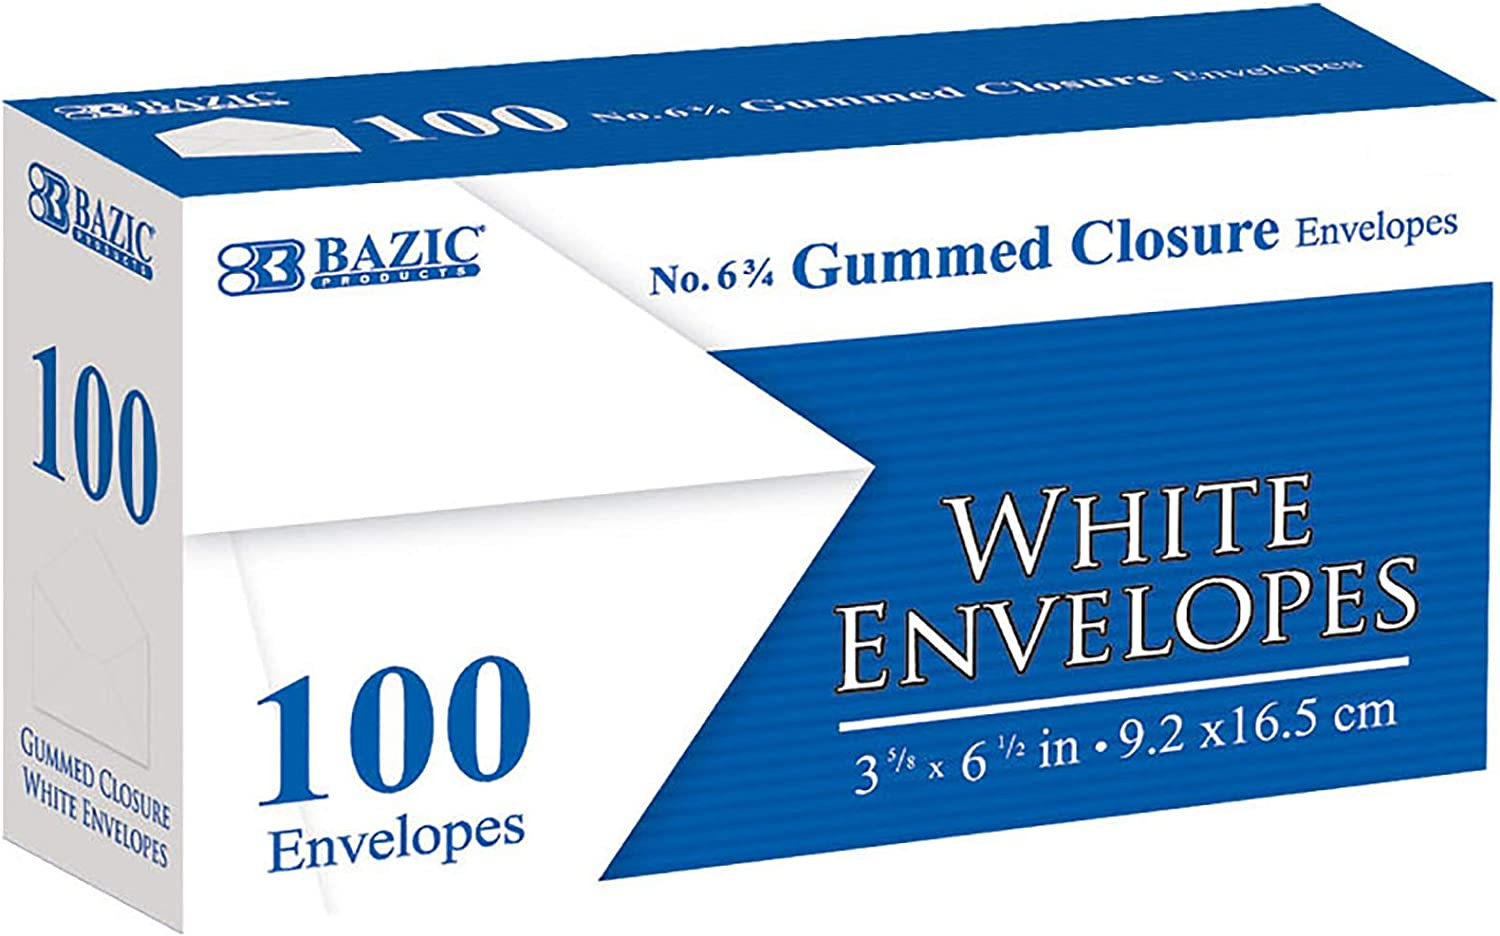 BAZIC White Envelope #6 3 4 Free Super popular specialty store Shipping Cheap Bargain Gift Gummed Seal 6 2 x 8 1 5 No Window